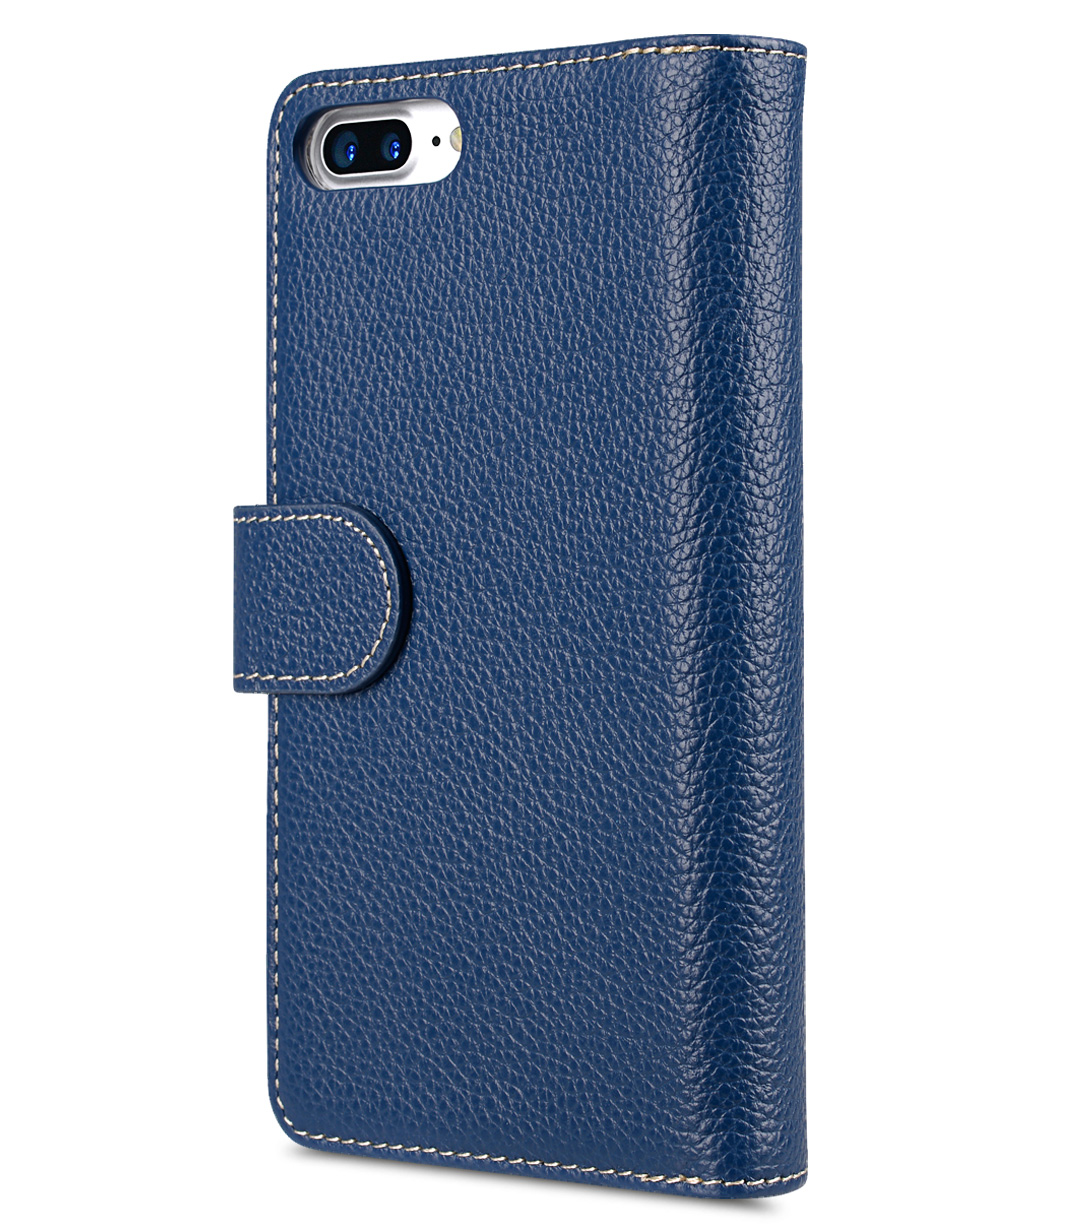 "Melkco Premium Leather Case for Apple iPhone 7 / 8 Plus(5.5"") - Wallet Plus Book Type (Dark Blue LC)"